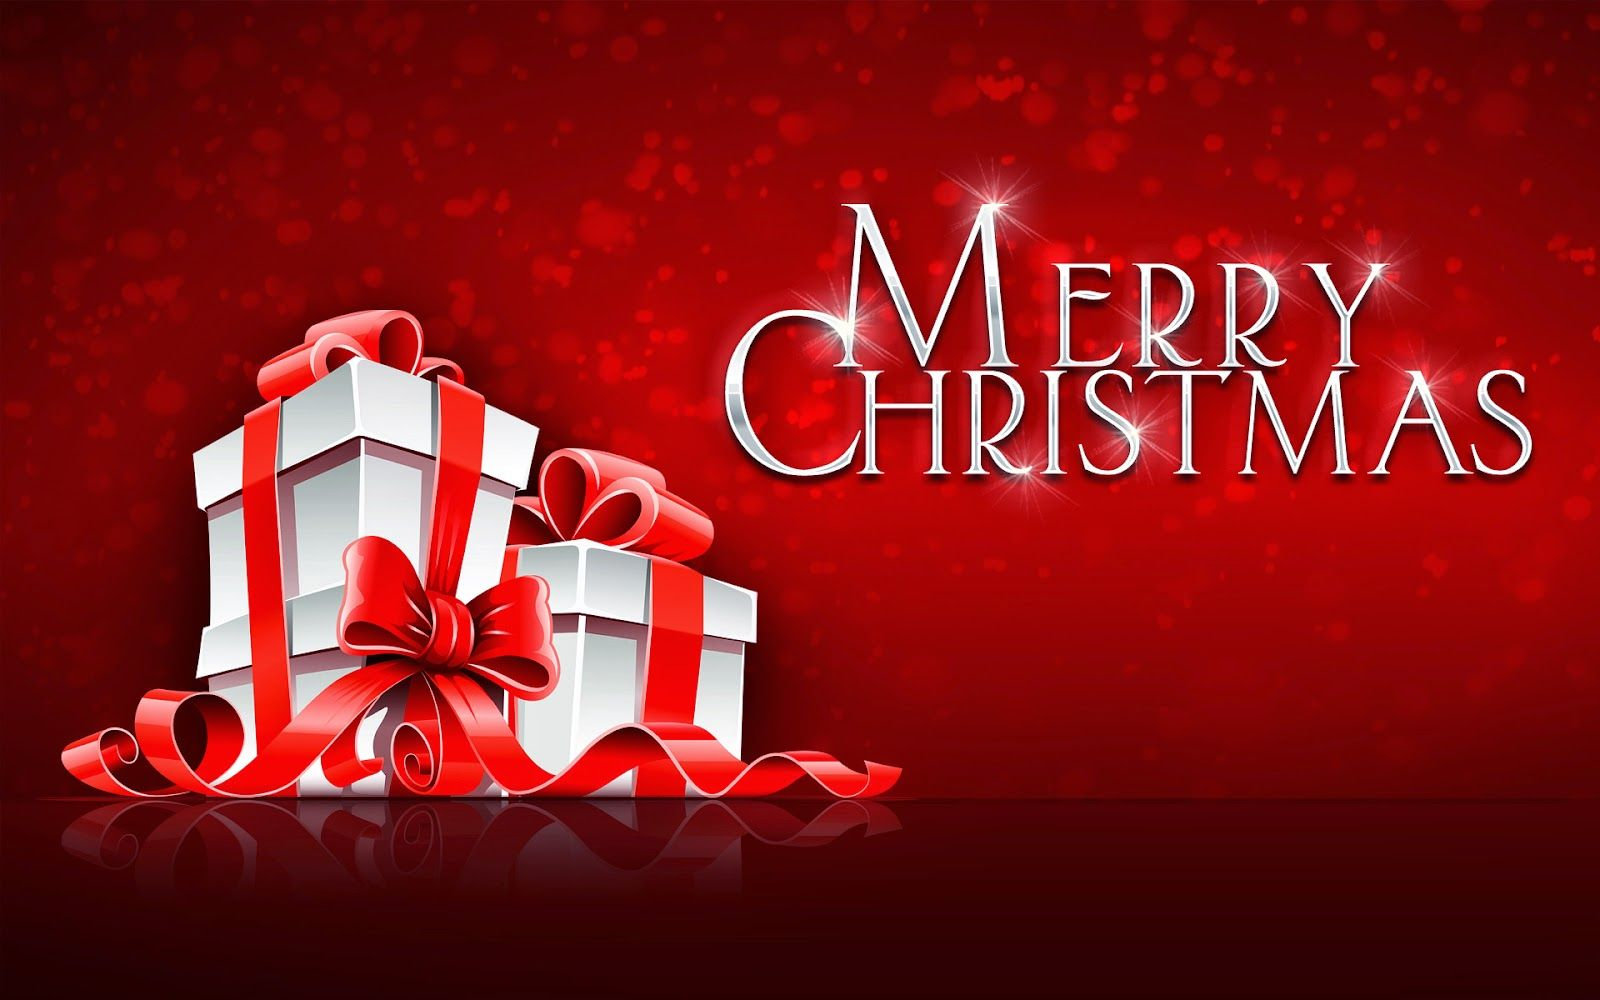 Merry Christmas & Happy New Year Email Template Cards